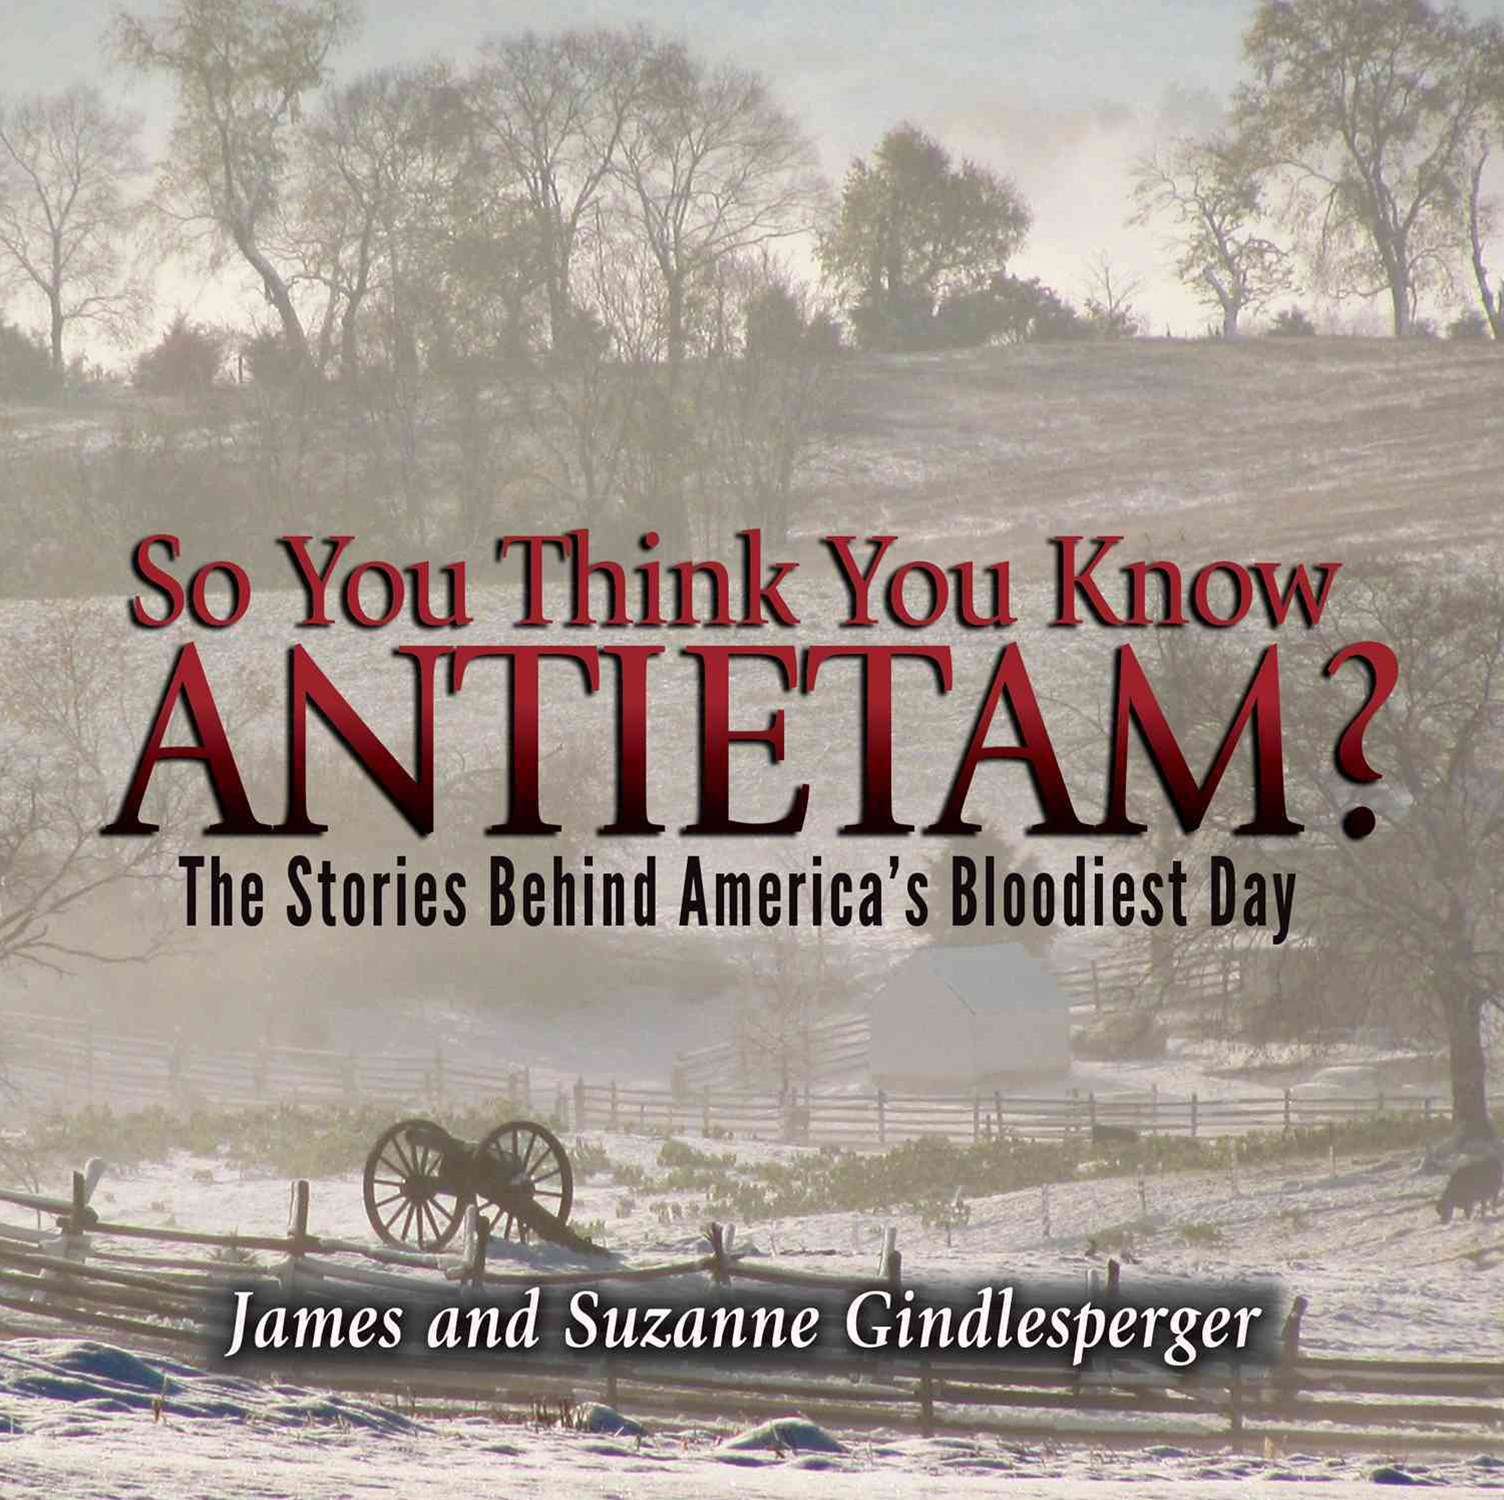 So You Think You Know Antietam?